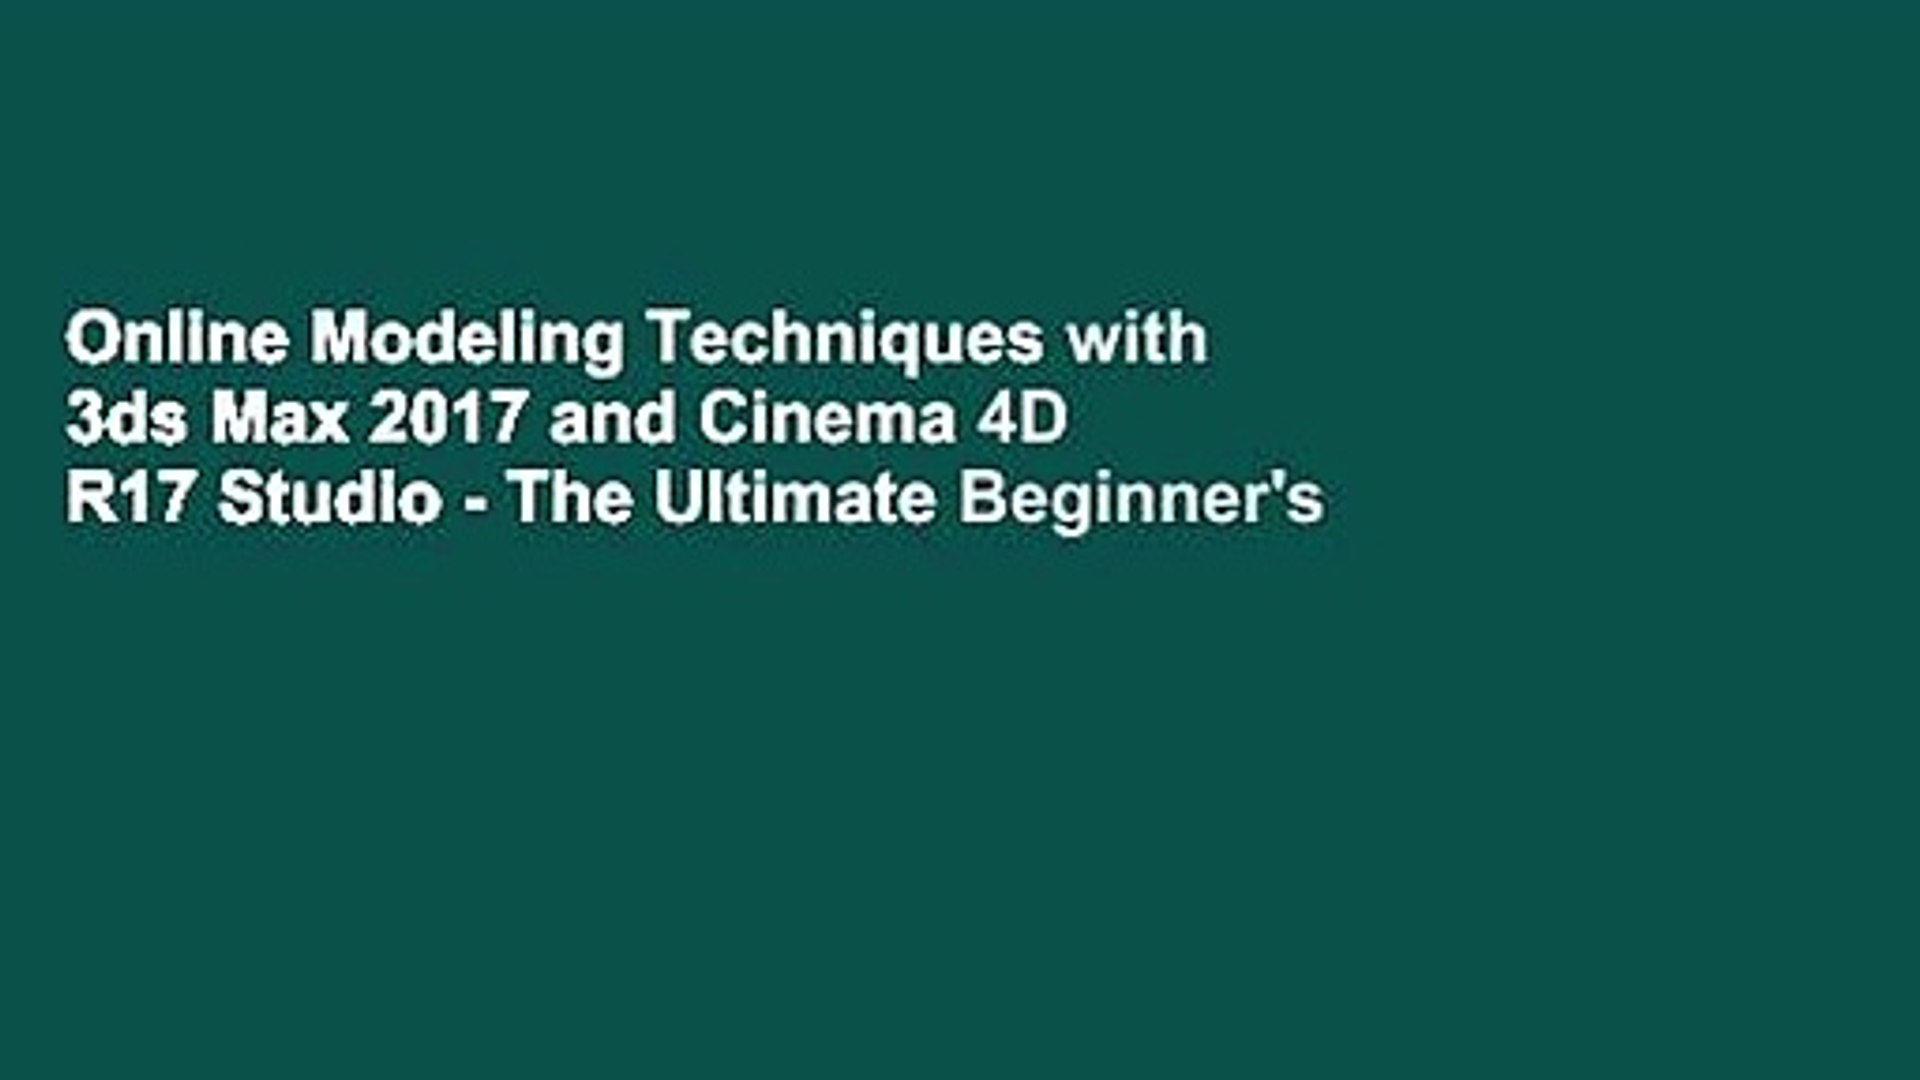 4D Max Cinema online modeling techniques with 3ds max 2017 and cinema 4d r17 studio - the  ultimate beginner's